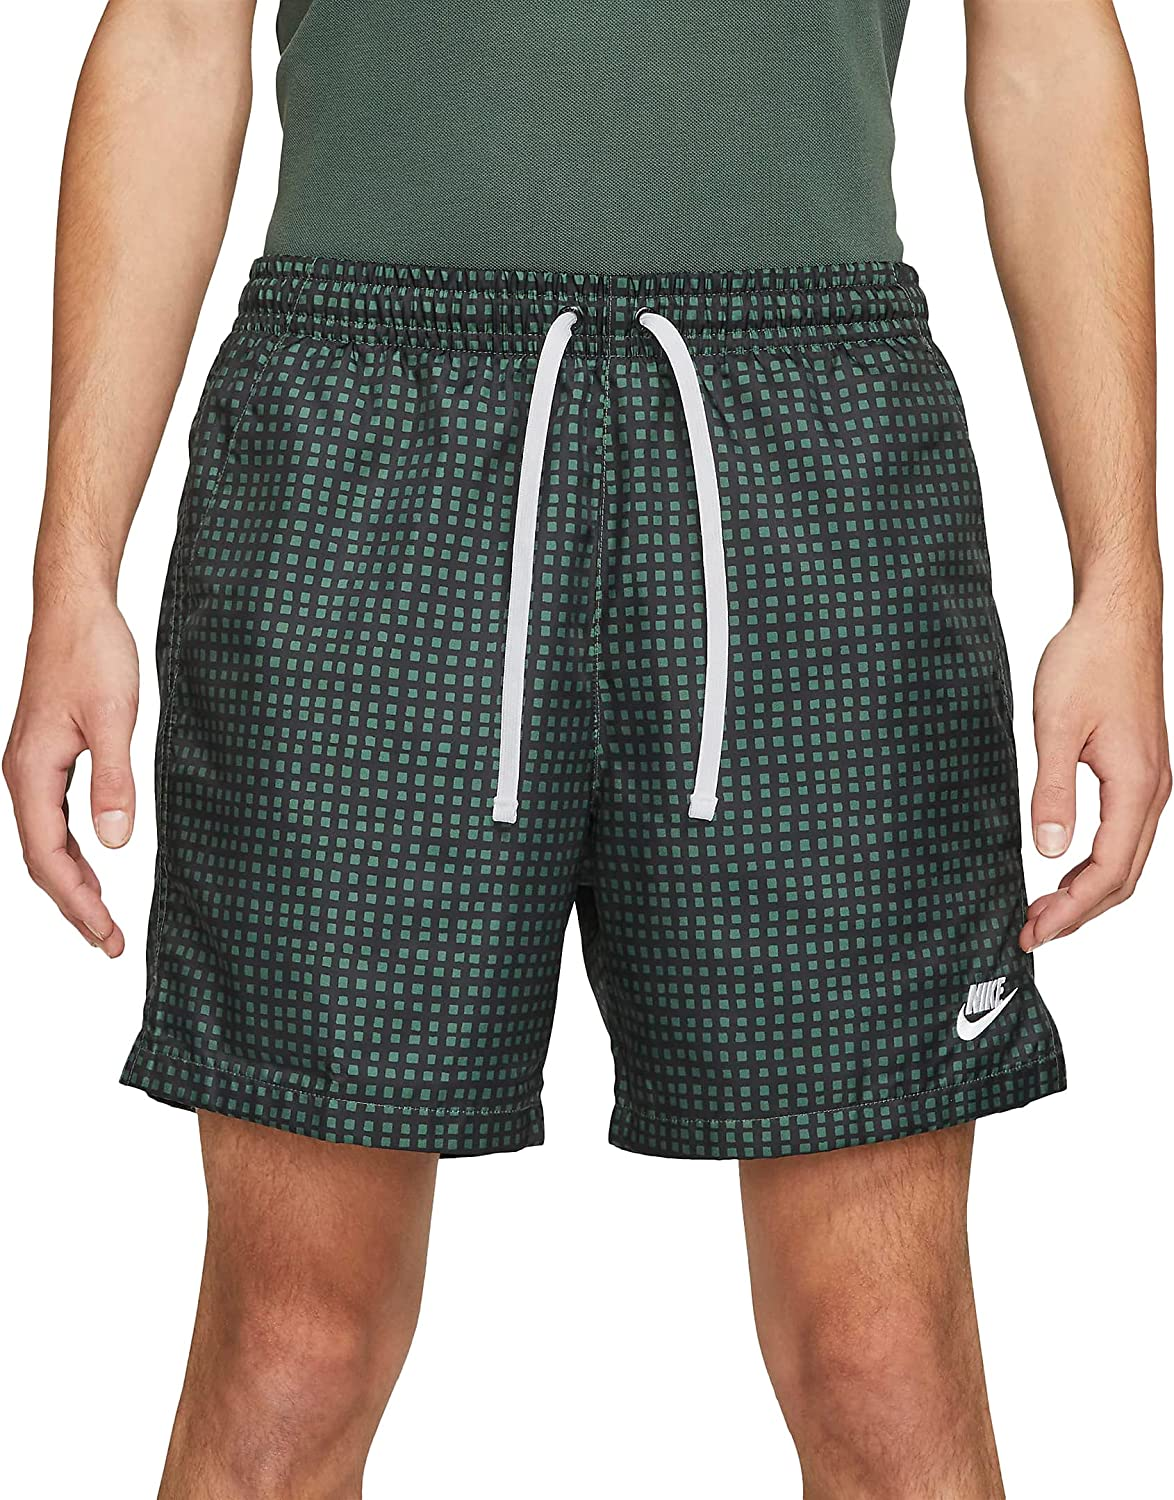 Nike Special price Sportswear Men's Woven Grid DA0051-337 All stores are sold Flow Mens Shorts